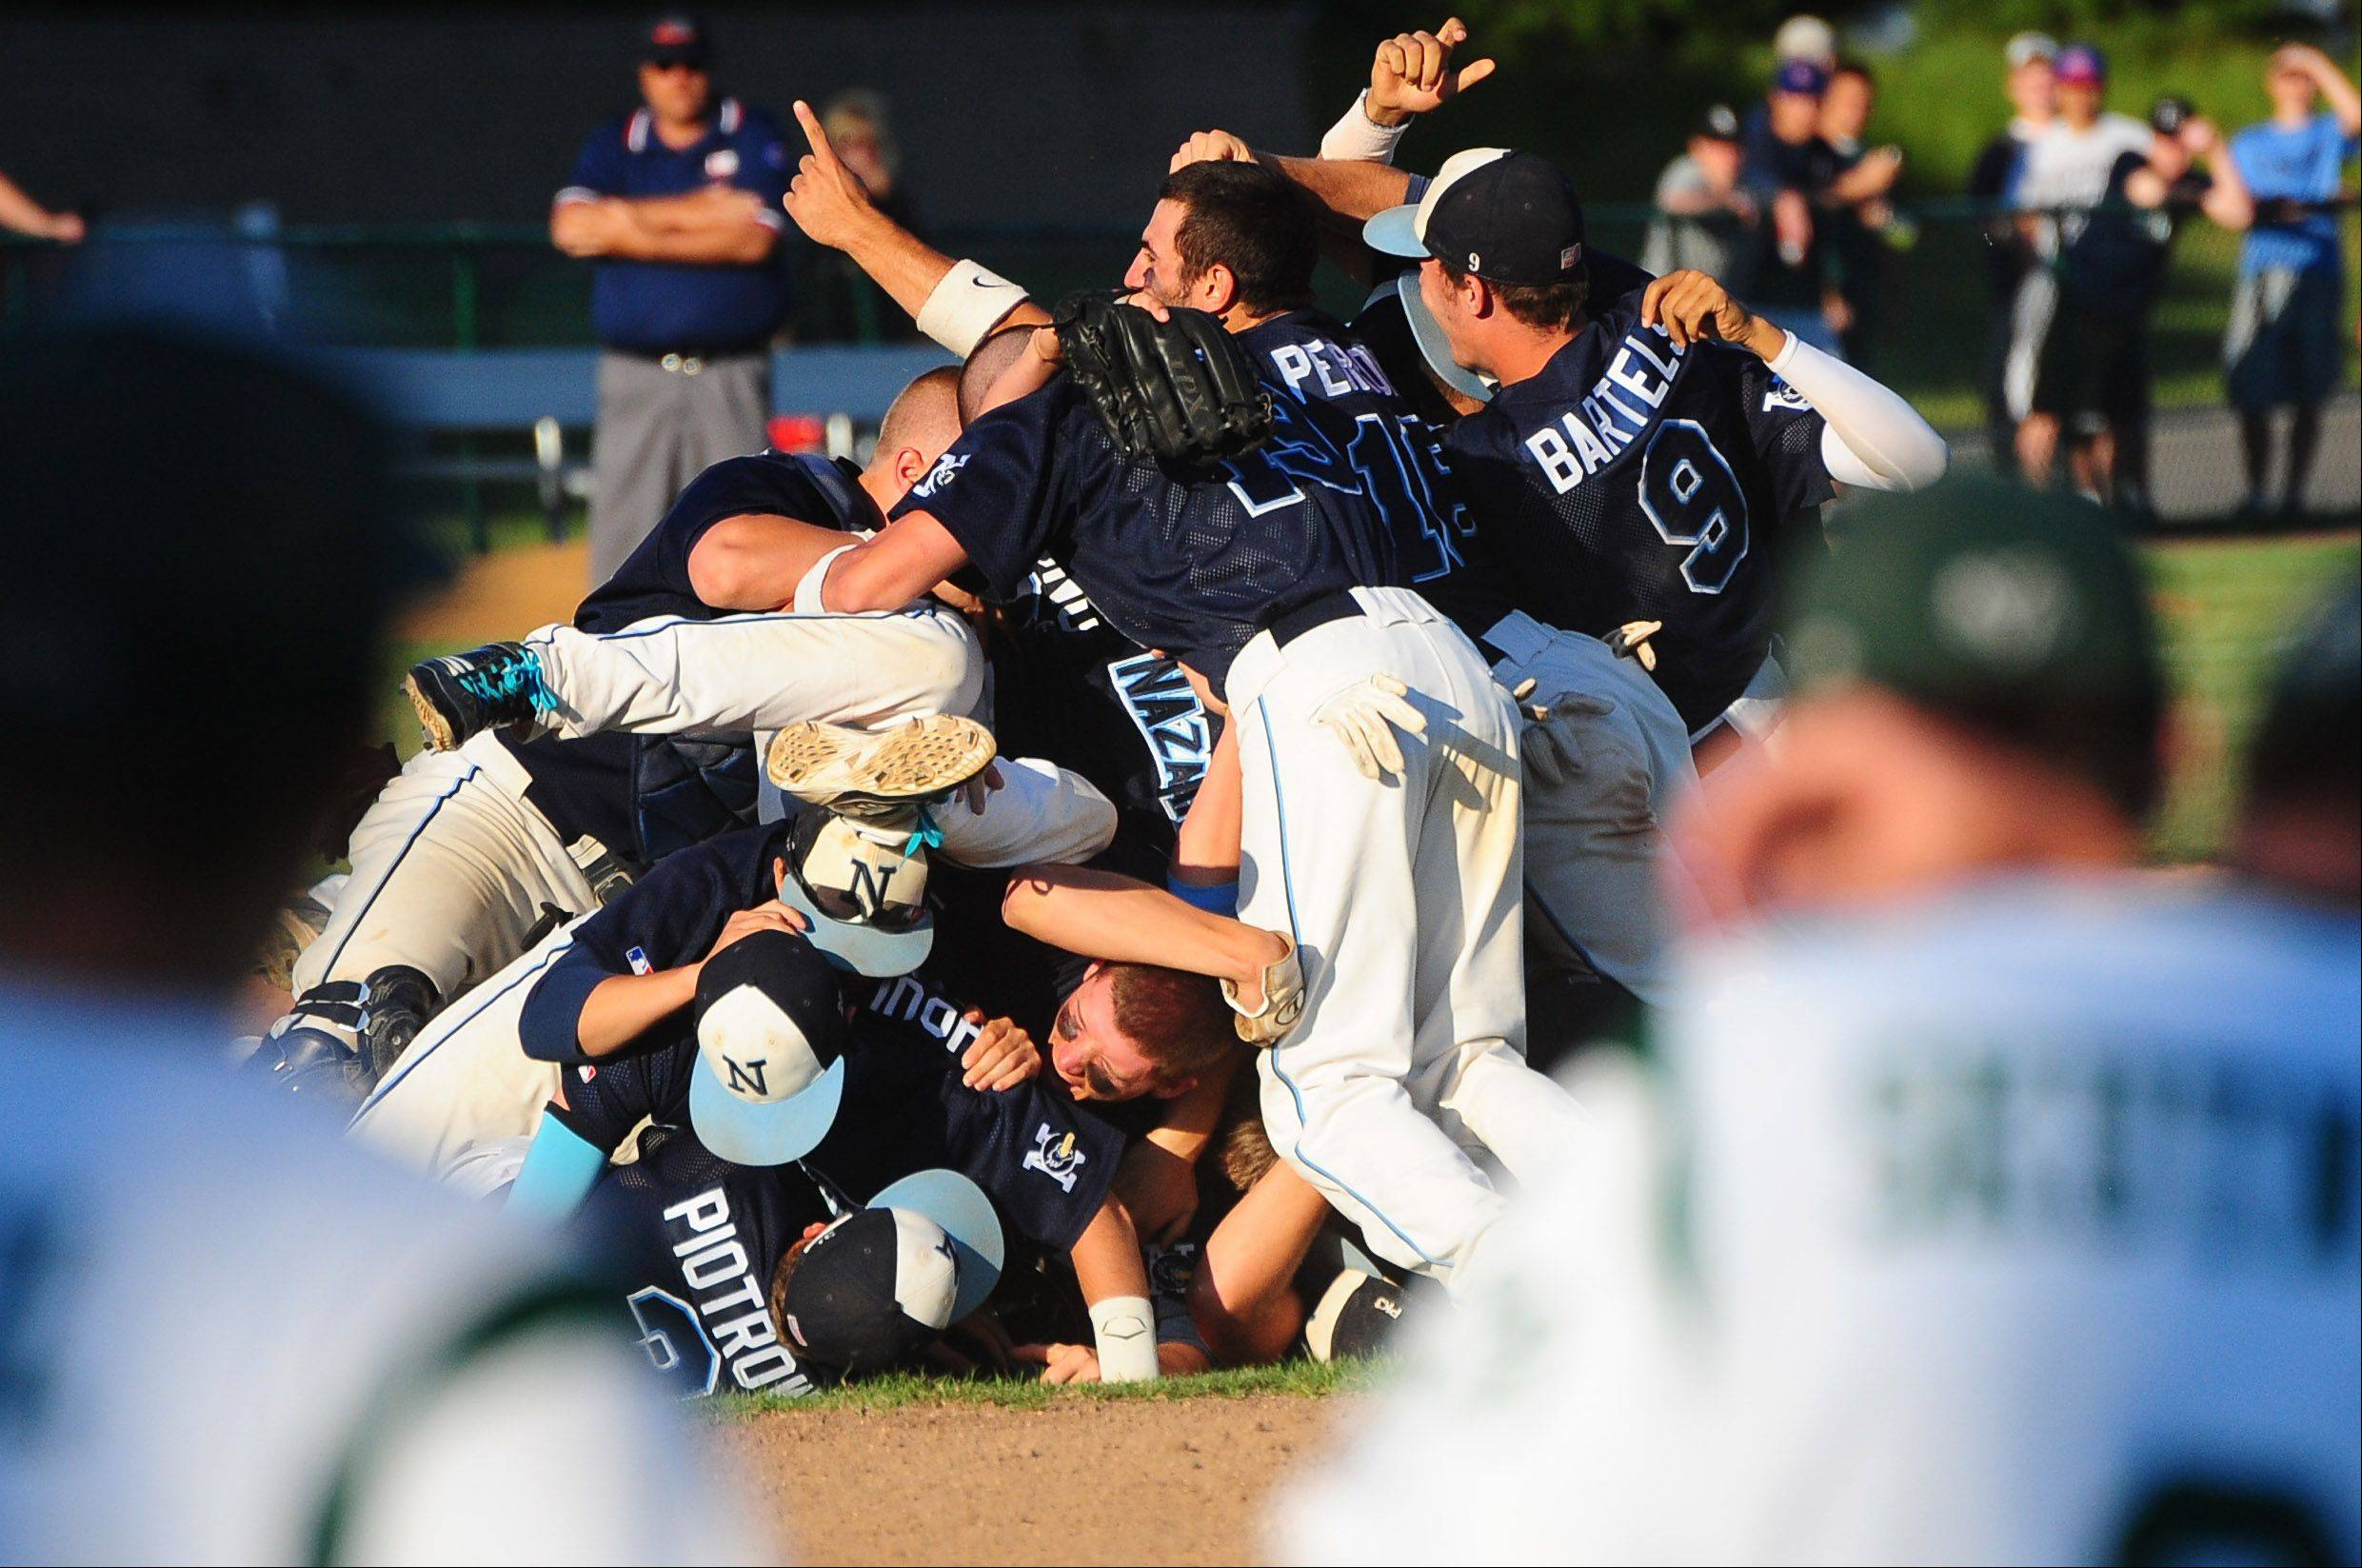 The Nazareth Academy baseball team celebrates its 7-2 win over Grayslake Central on Monday.